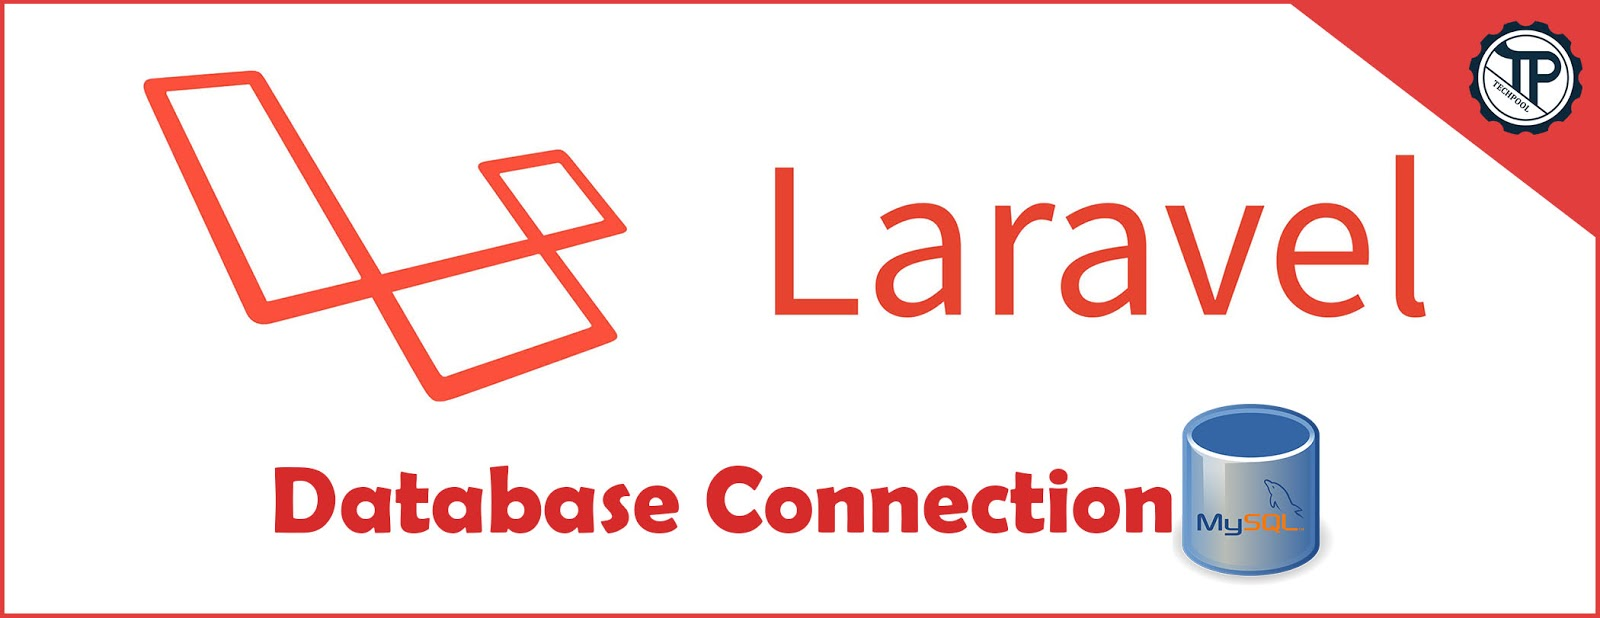 Laravel Database Connection and tables